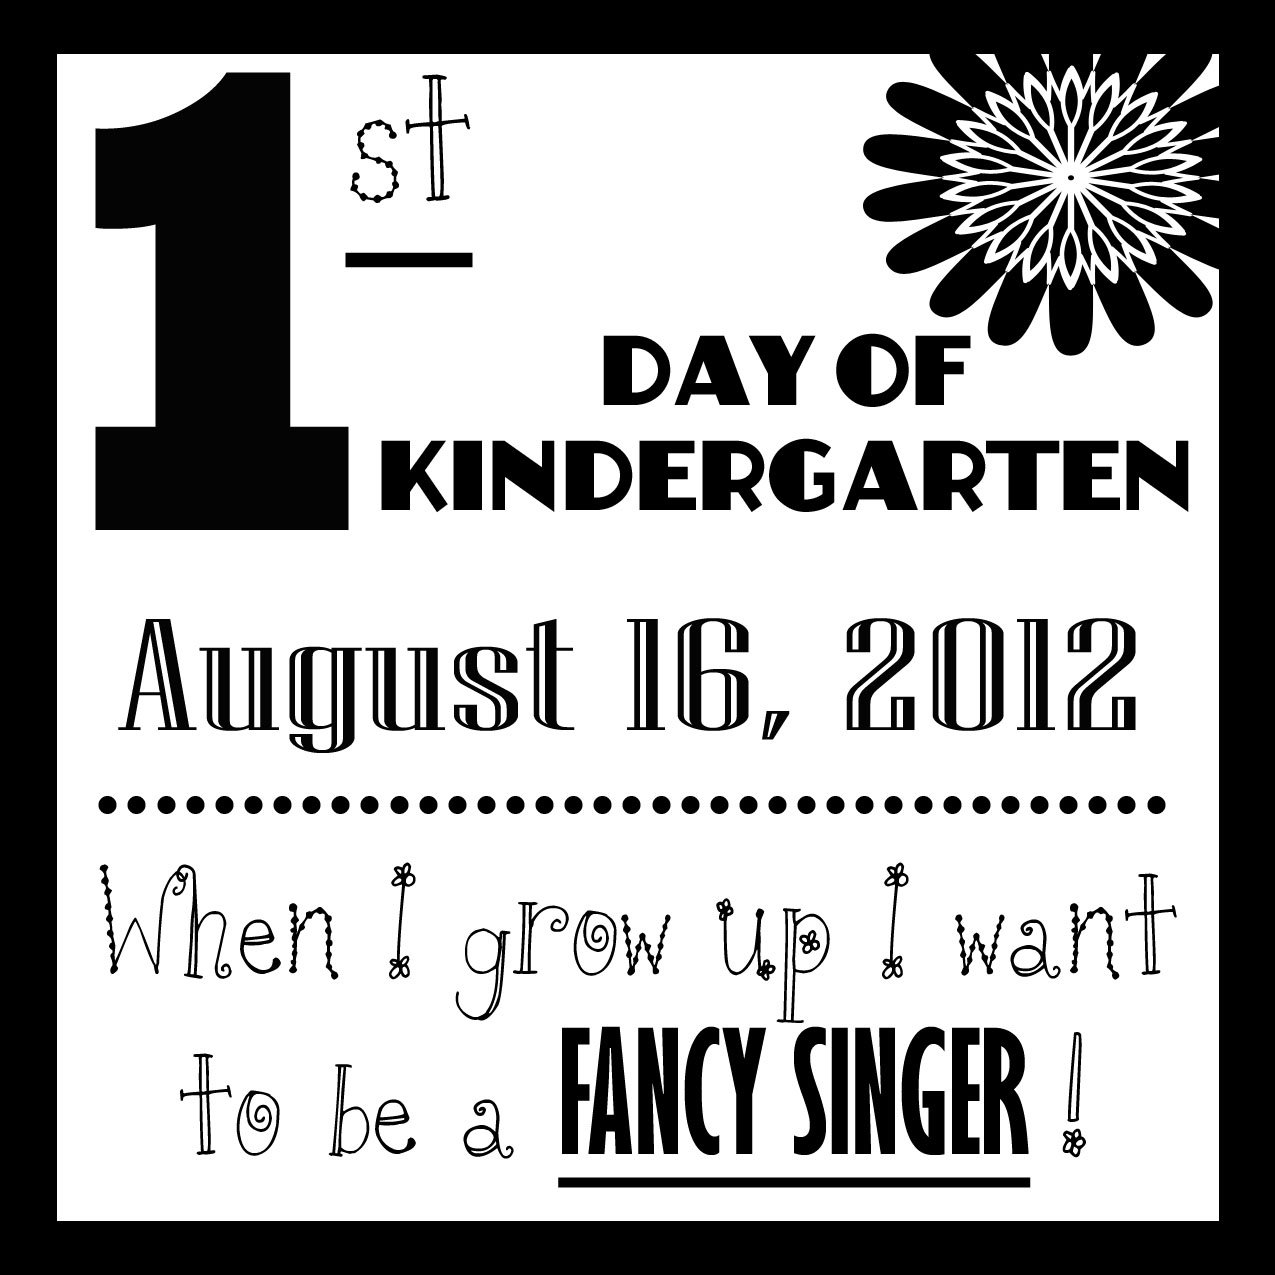 First Day Of Kindergarten Sign Here's her lovely little sign!